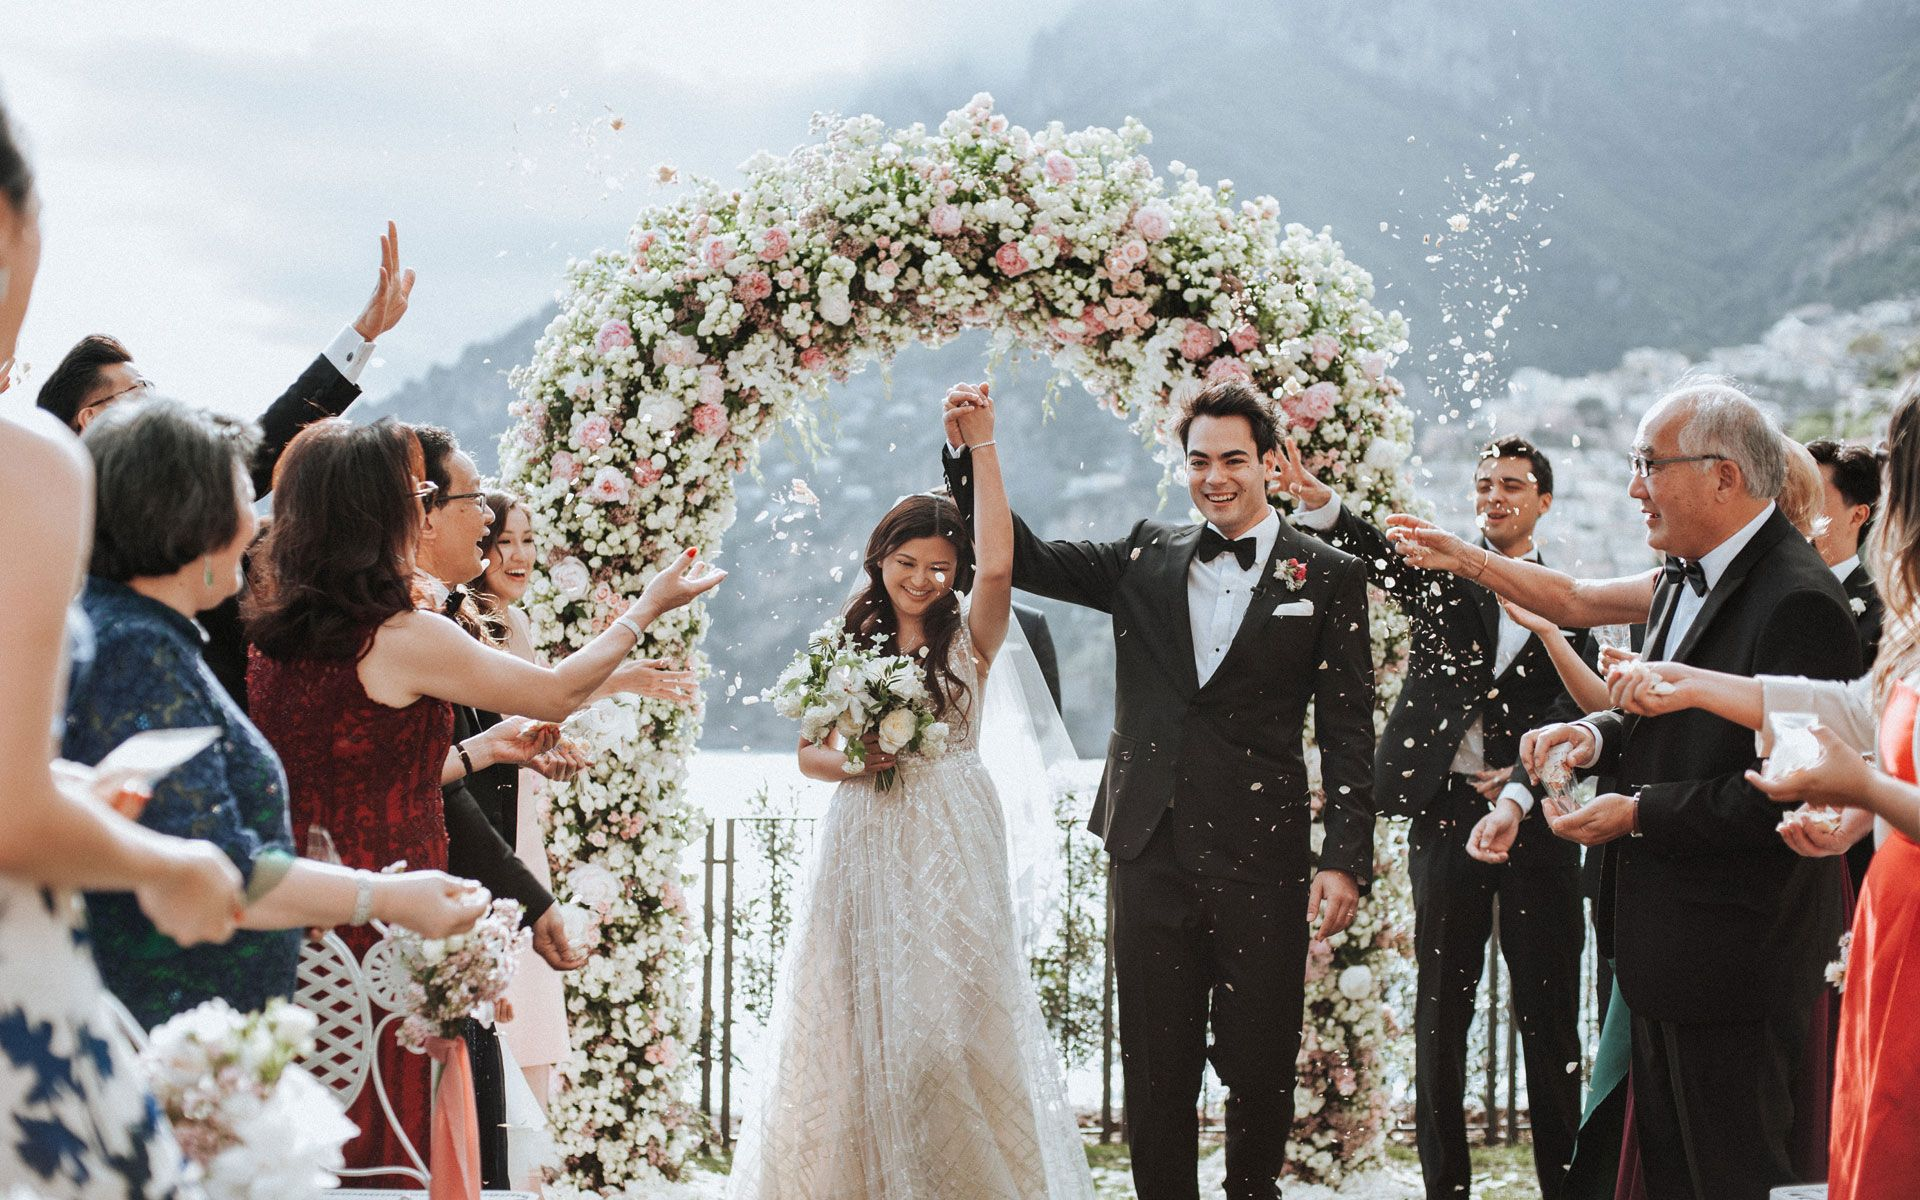 5 Things To Know Before Planning A Destination Wedding, As Told By Yeoh Pei Nee